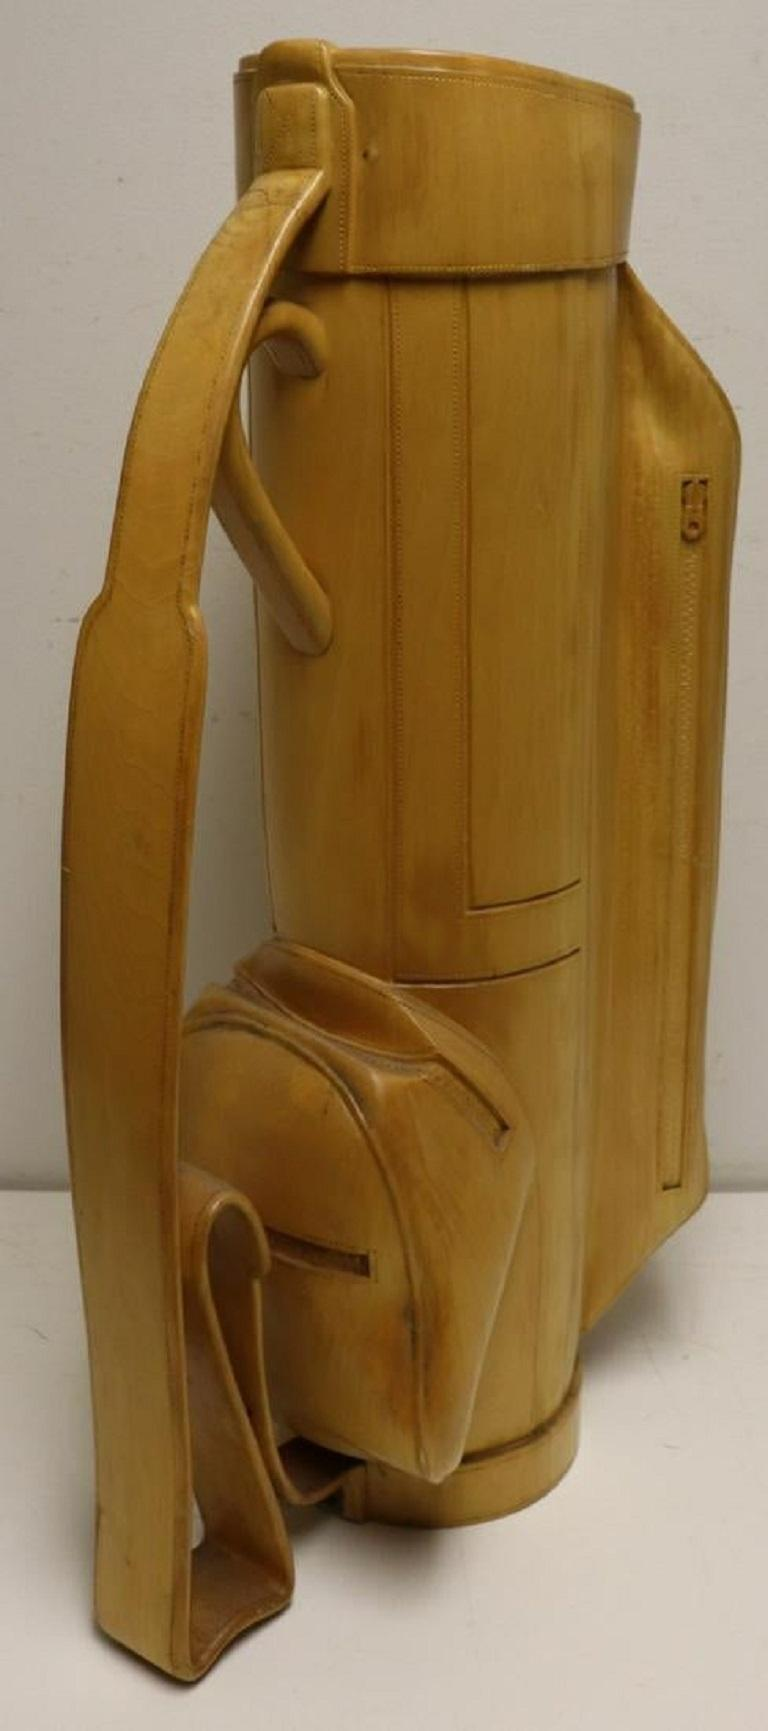 Heavily carved solid wood golf bag. Custom made and one of a kind. Nice item for a collector or golf enthusiast. Has a metal insert inside.